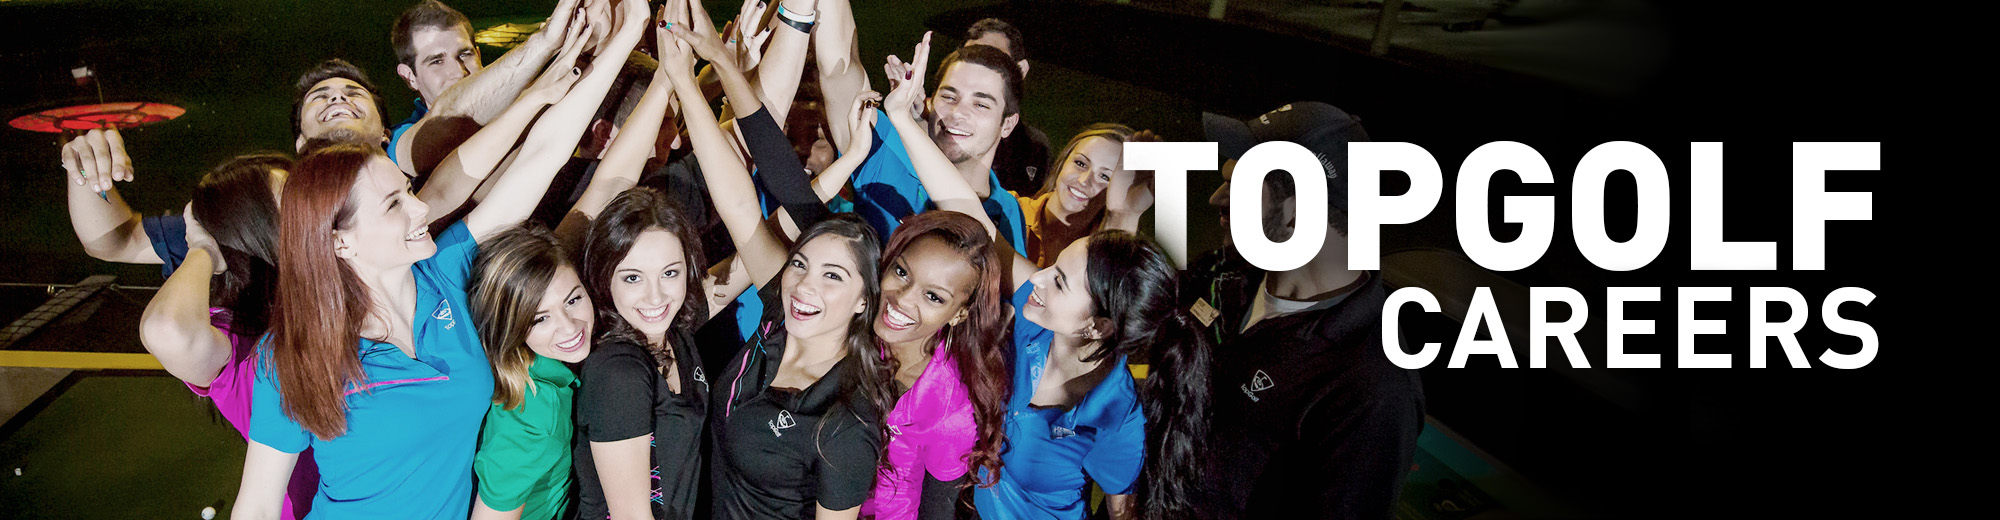 topgolf careers